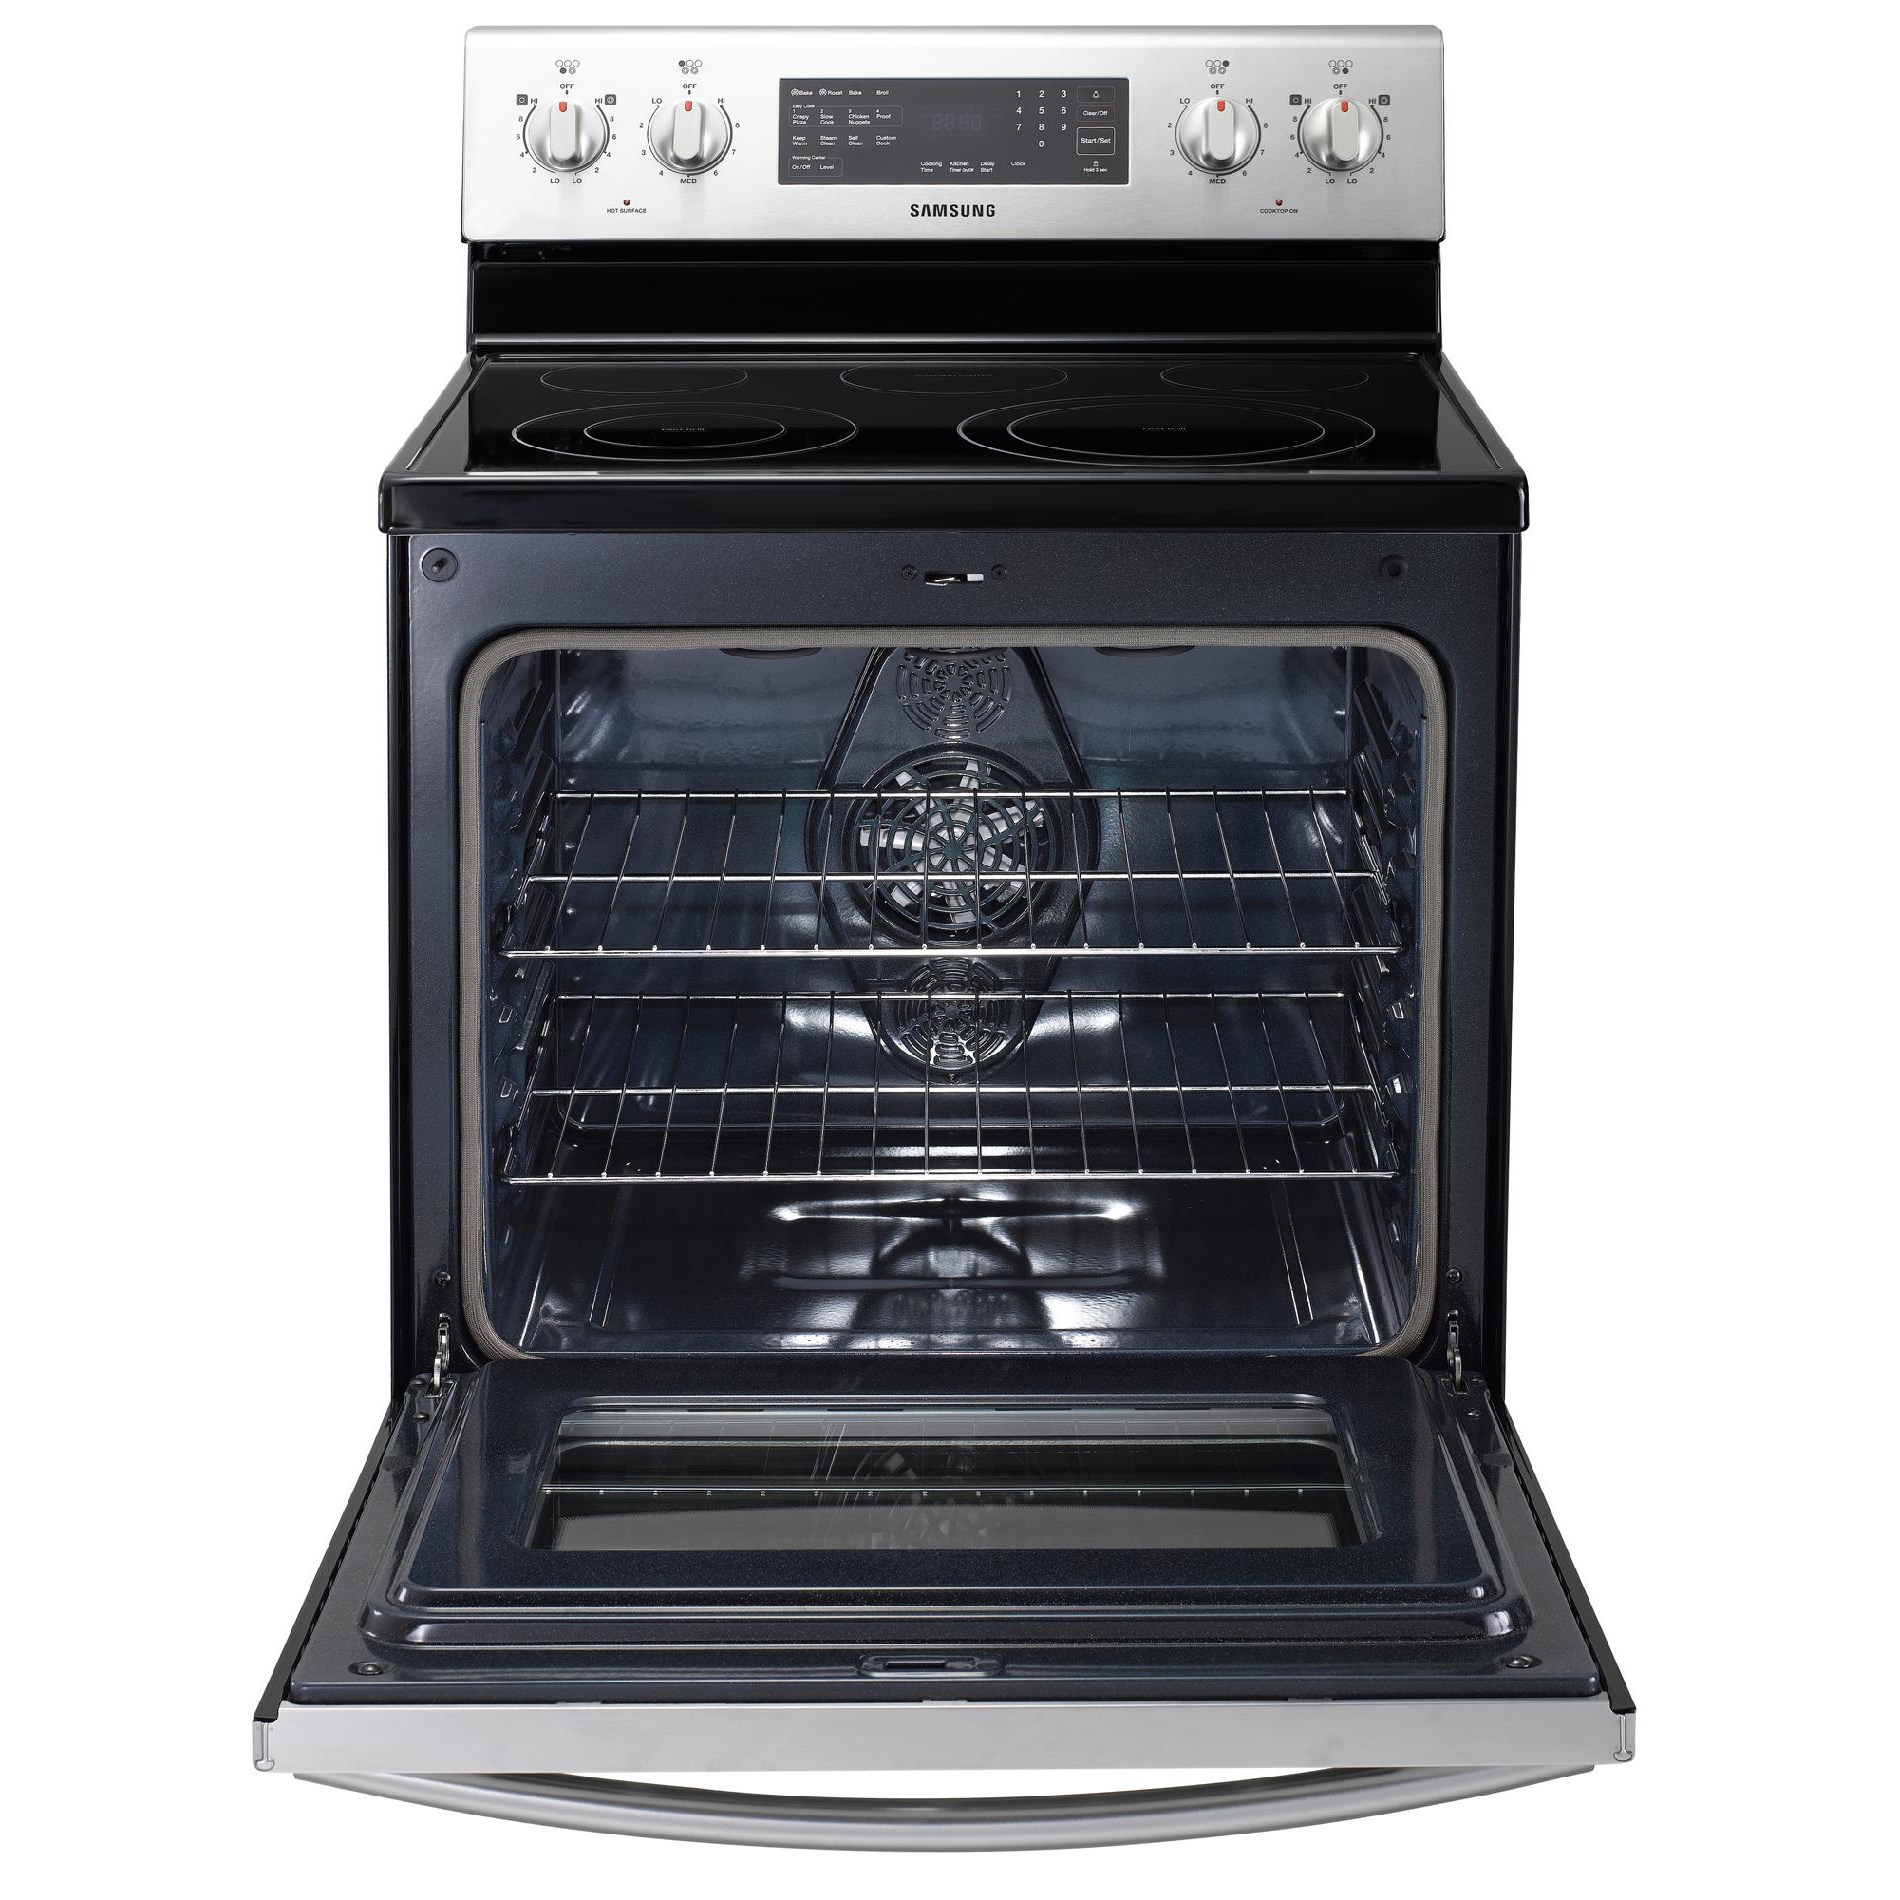 Samsung 5 9 Cu Ft Electric Range Stove W Convection